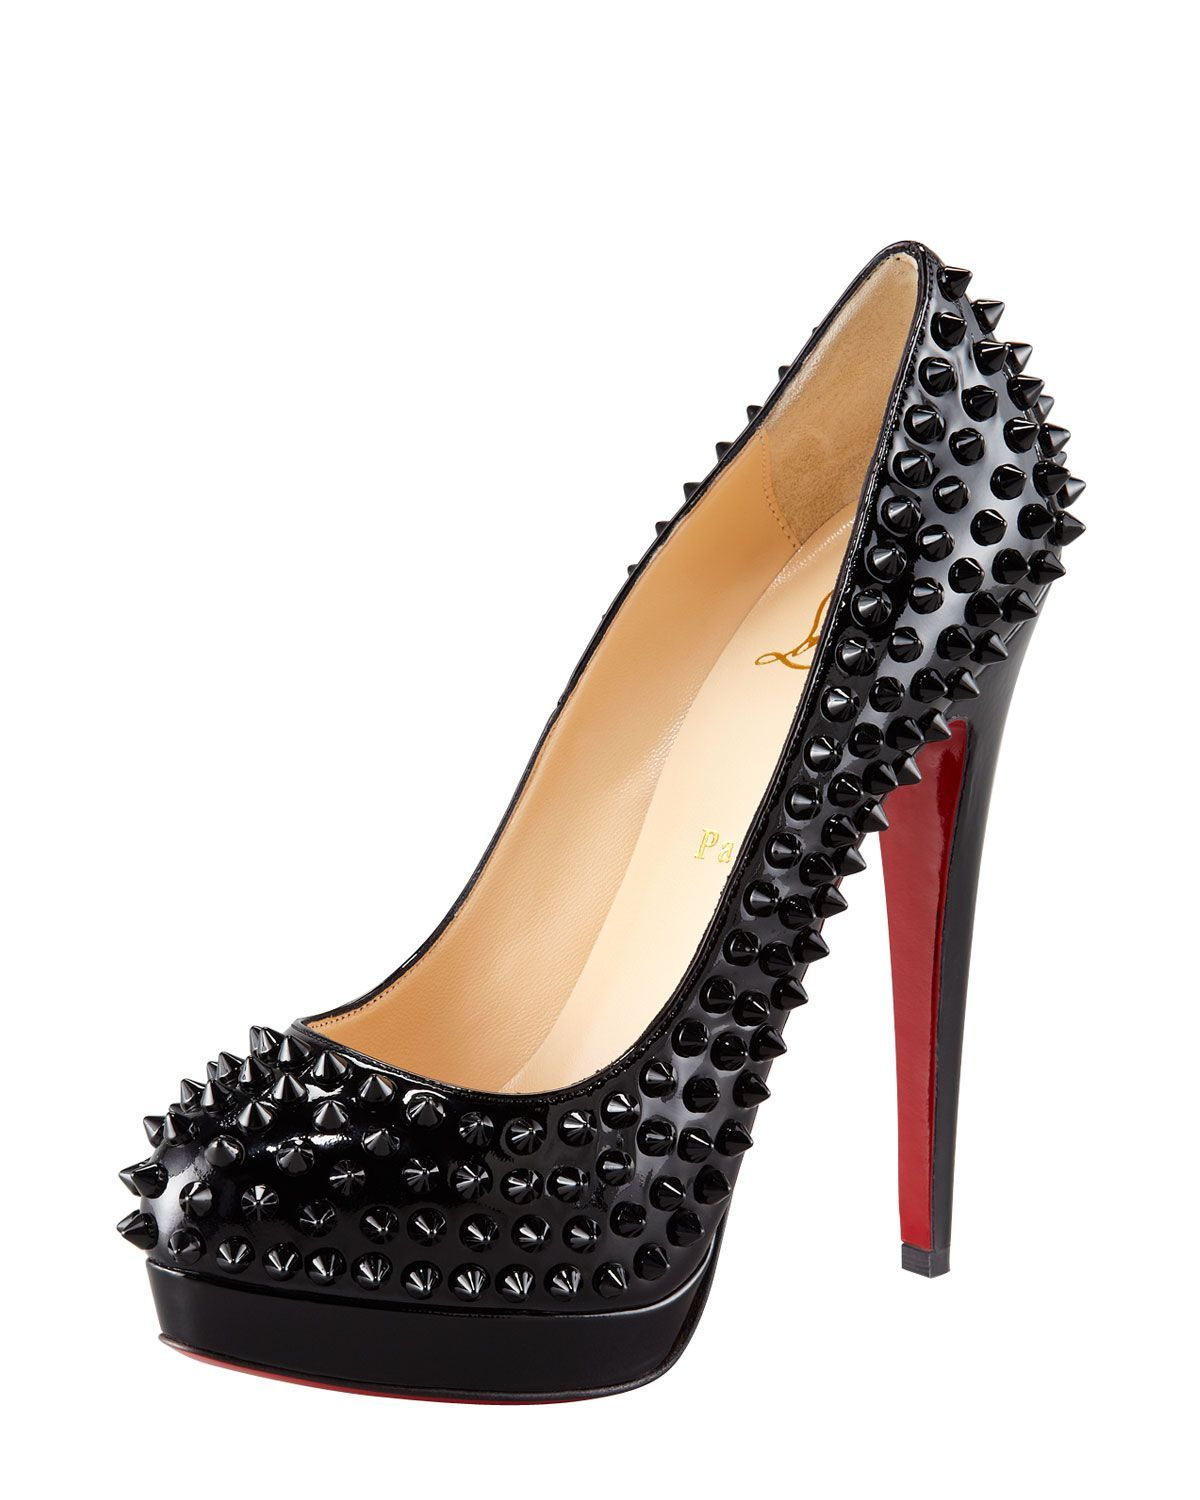 christian louboutin shoes bergdorf goodman